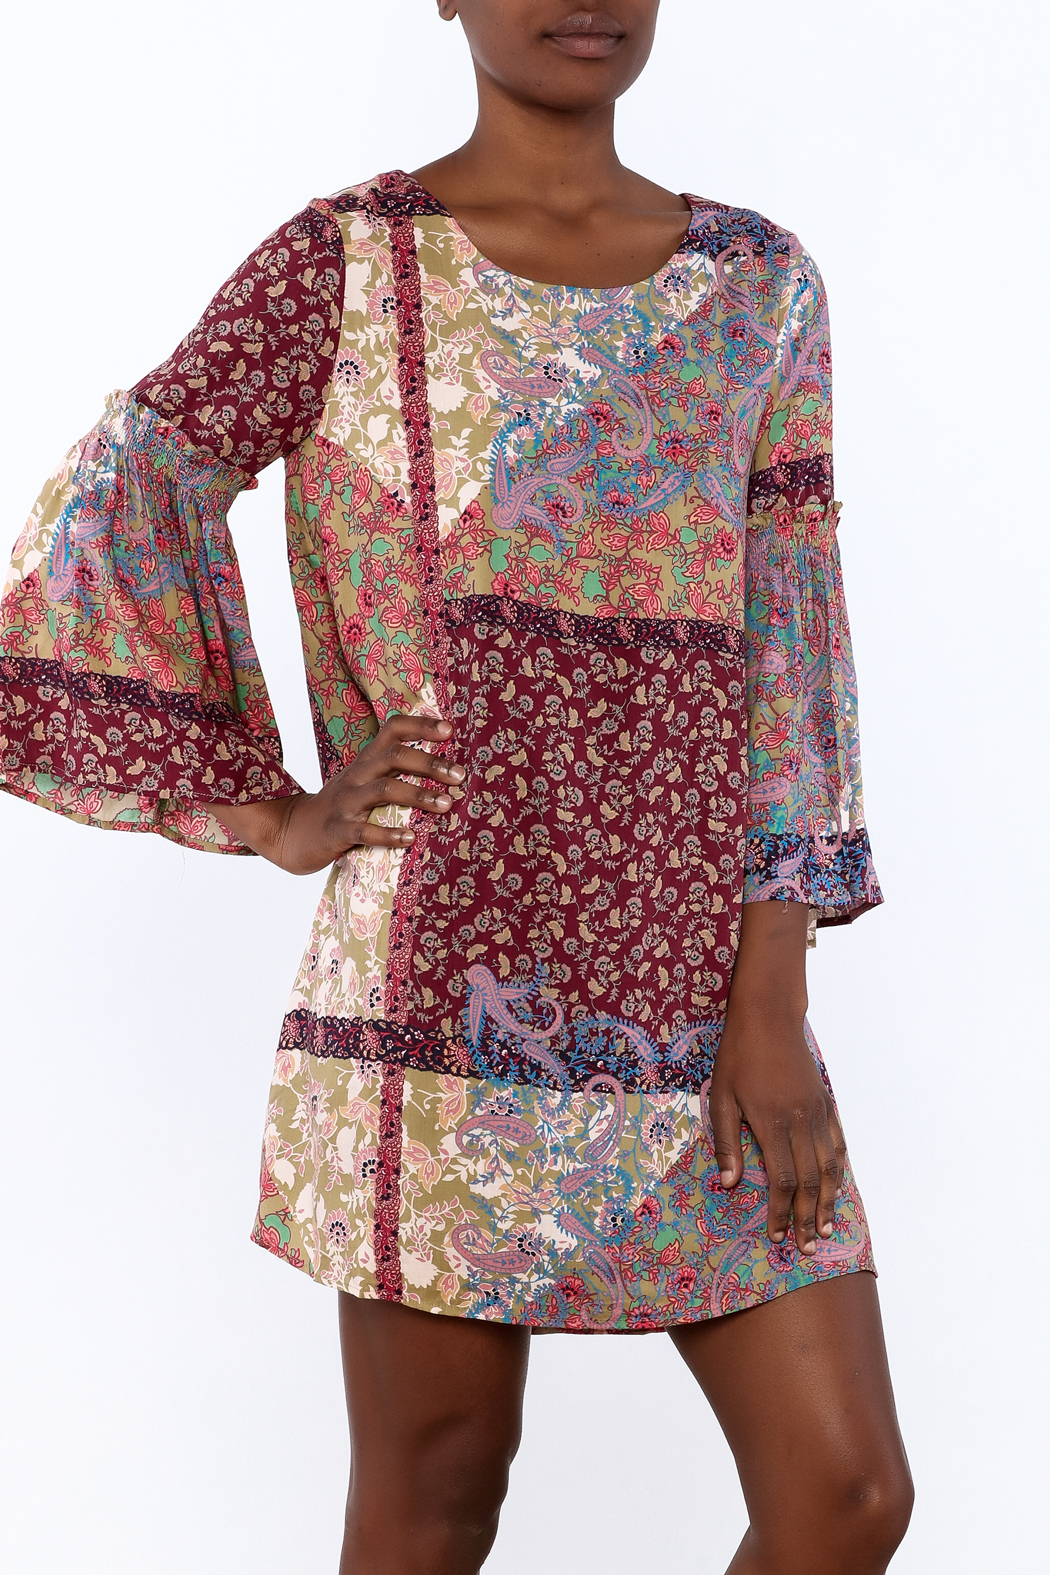 Gina Louise Bohemian Patchwork Dress - Main Image